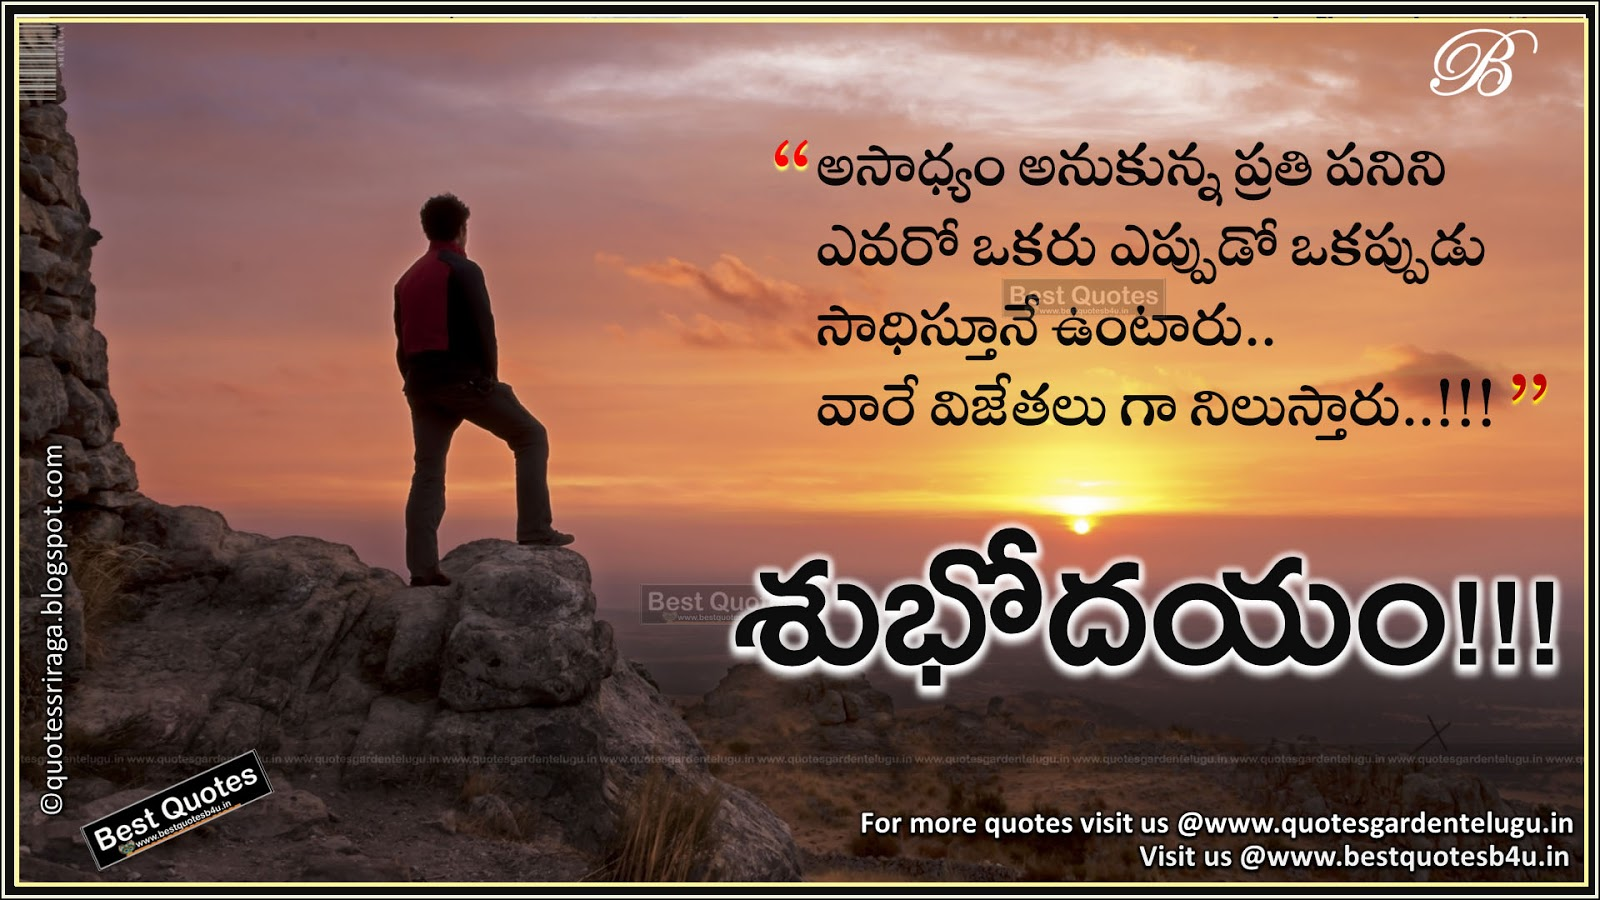 Nice Telugu Quotes On Life Best Telugu Inspirational And